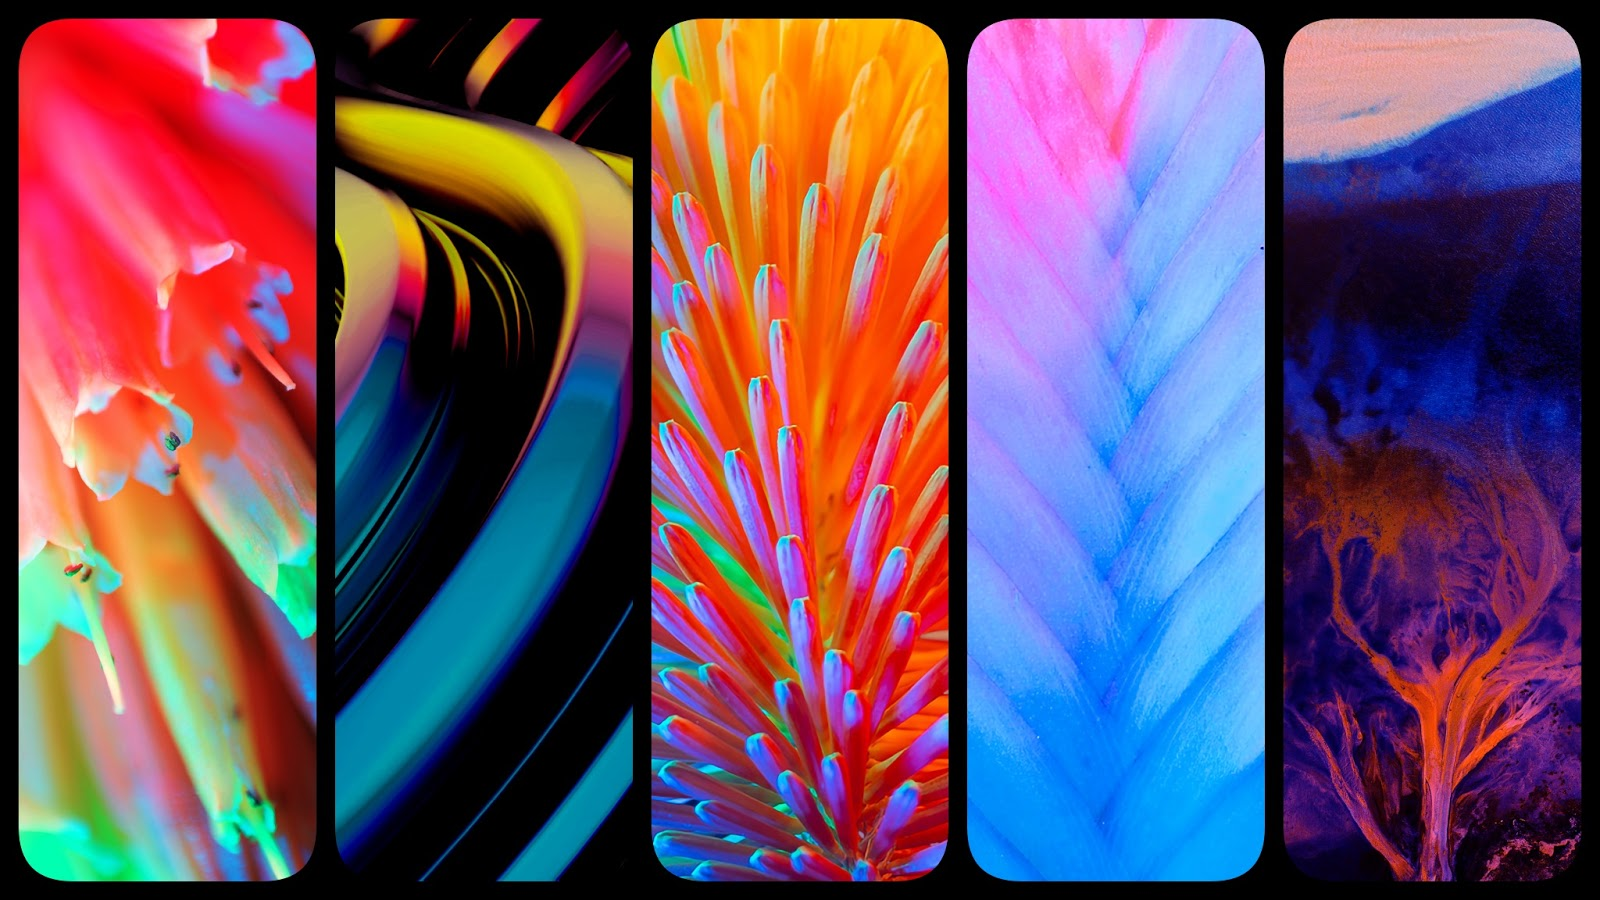 HD Abstract background wallpapers for phone